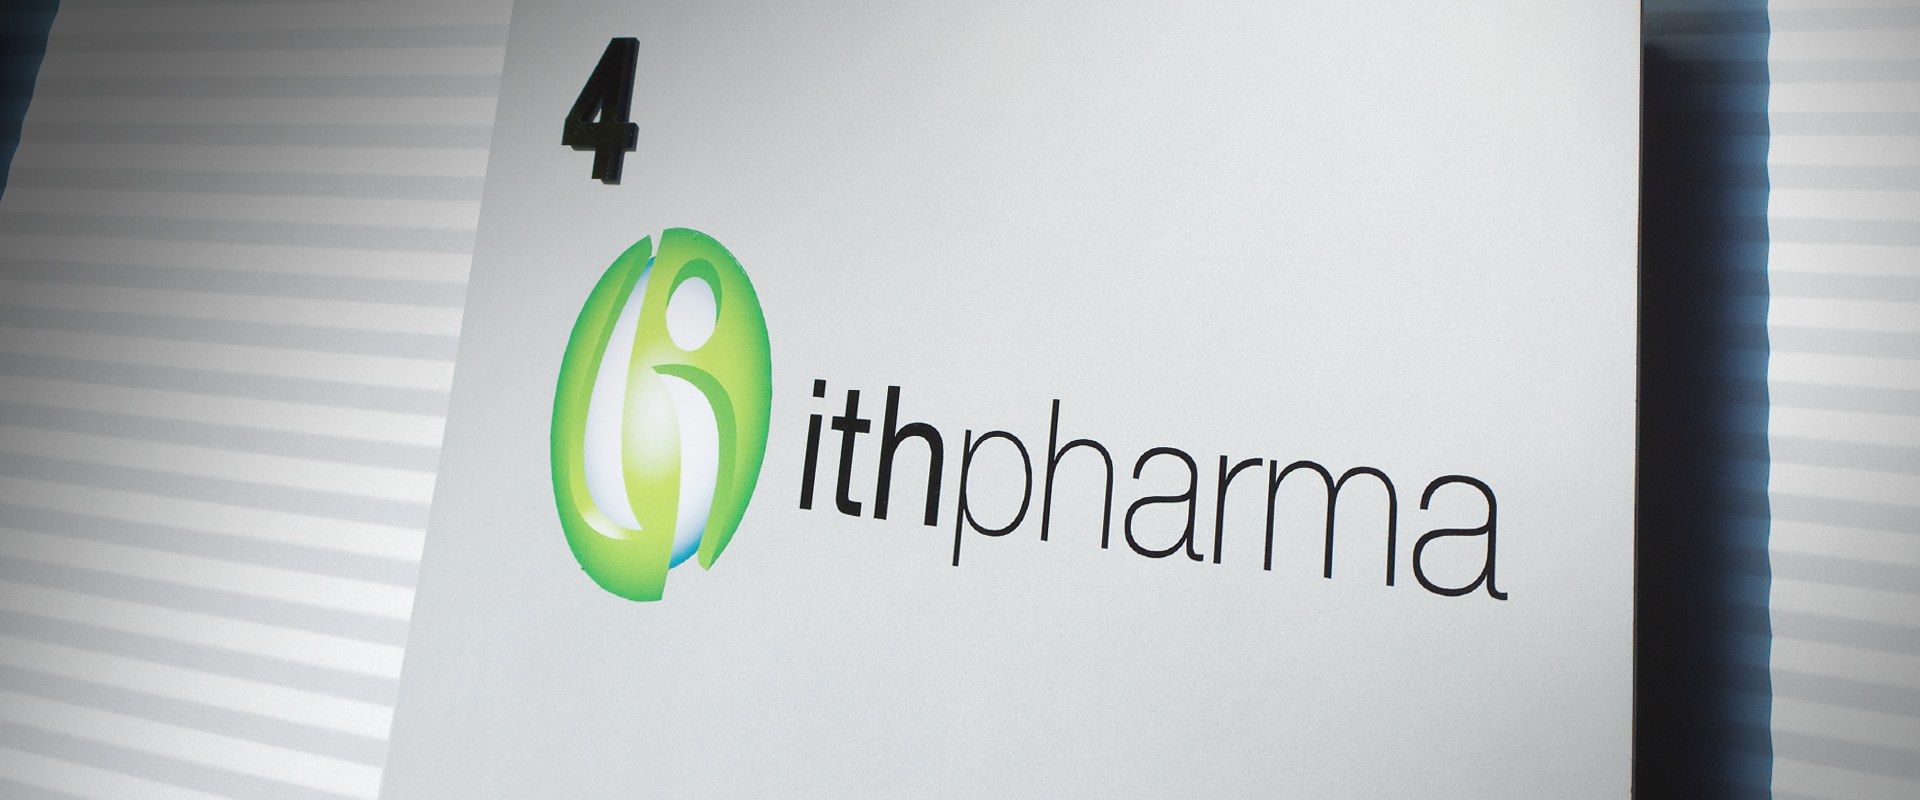 ITH Pharma - Contact Us